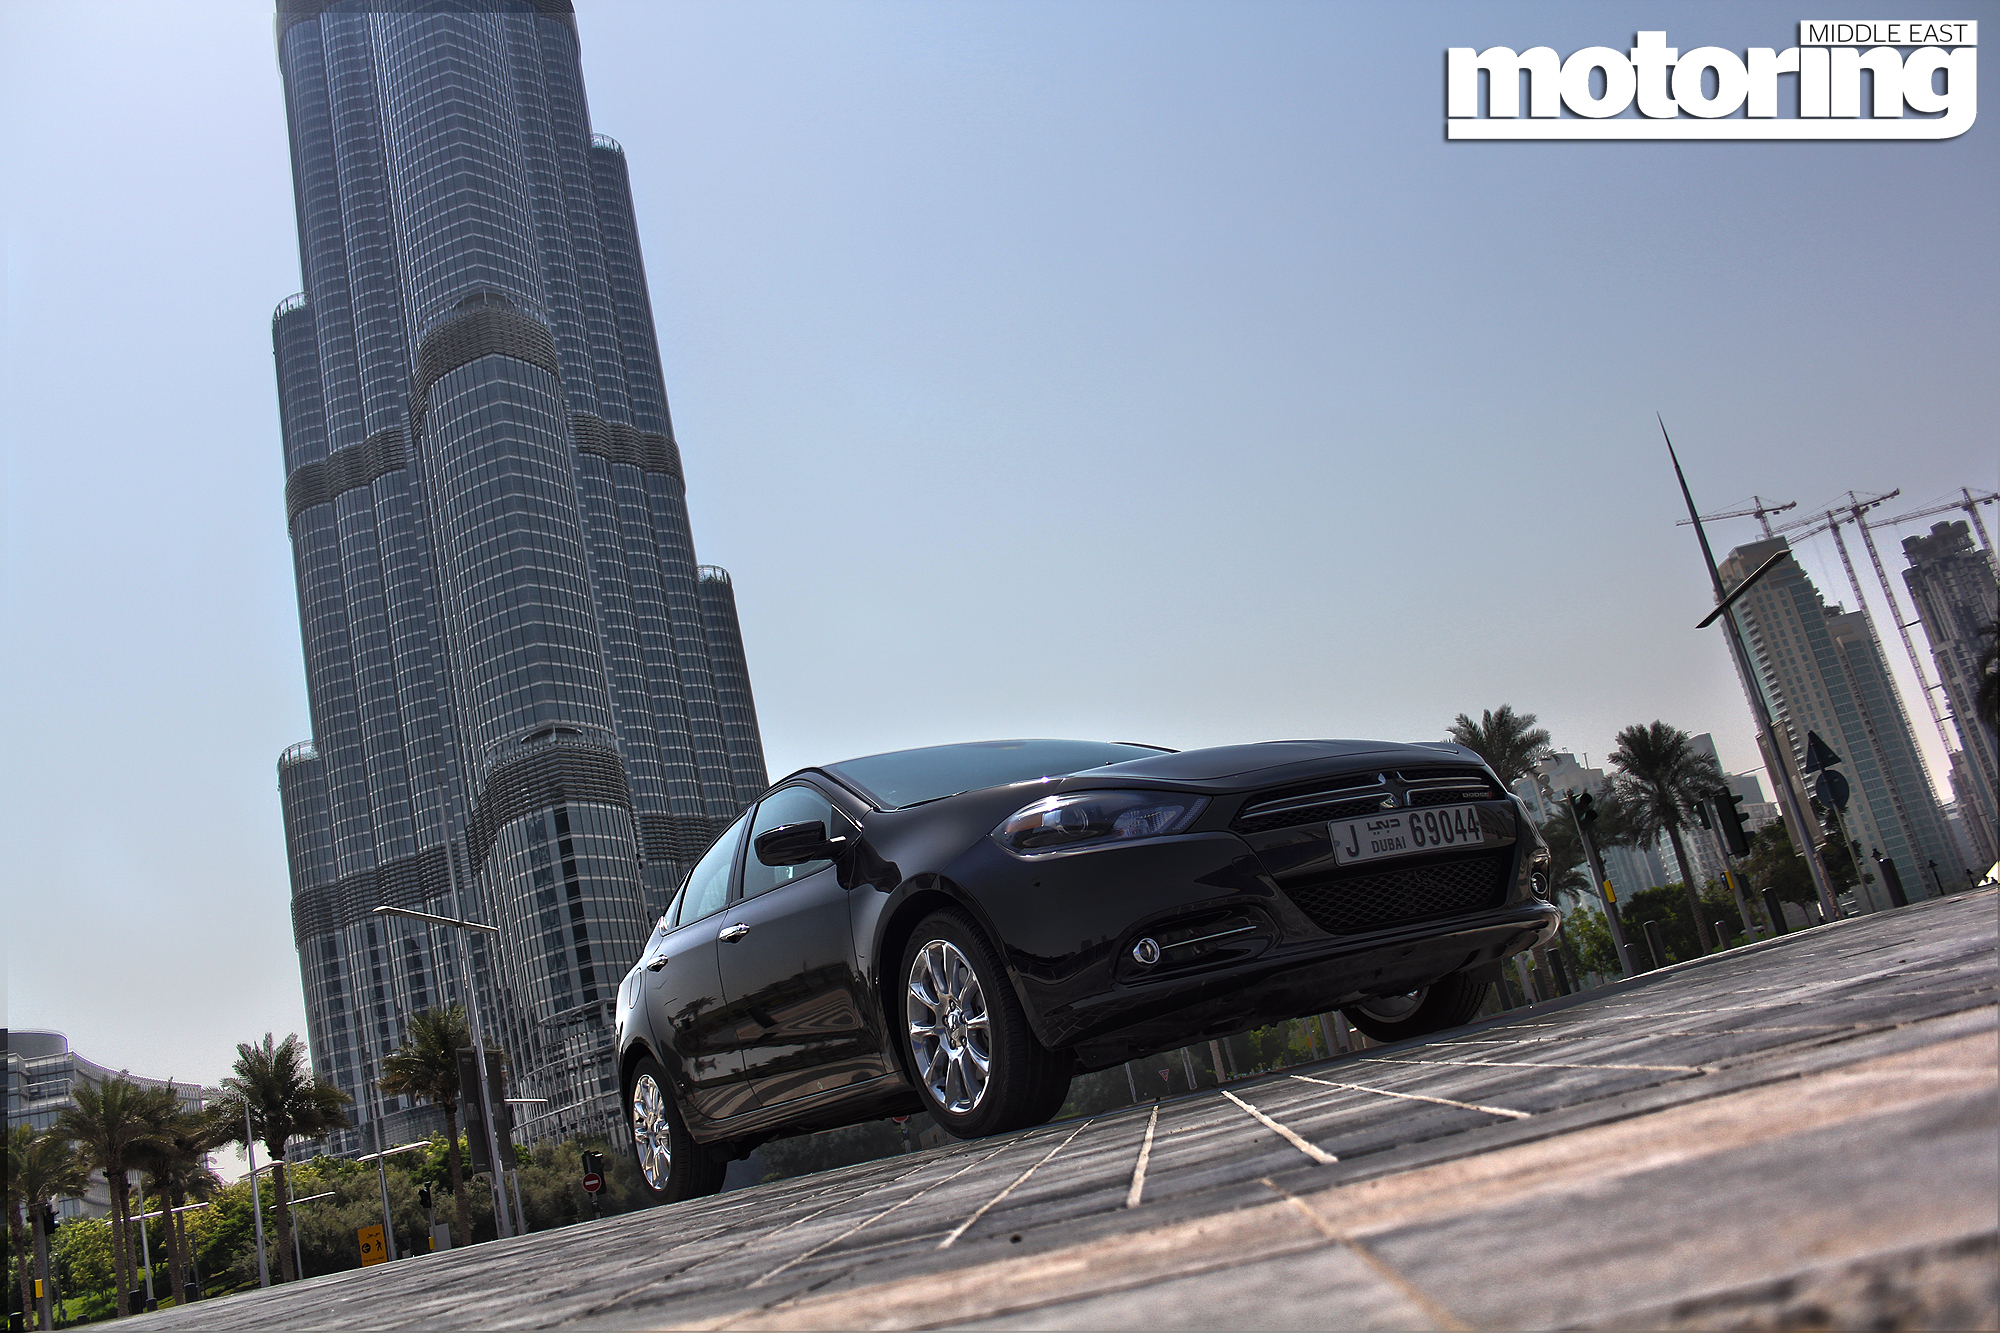 mme exclusive - 2013 dodge dart - motoring middle east: car news